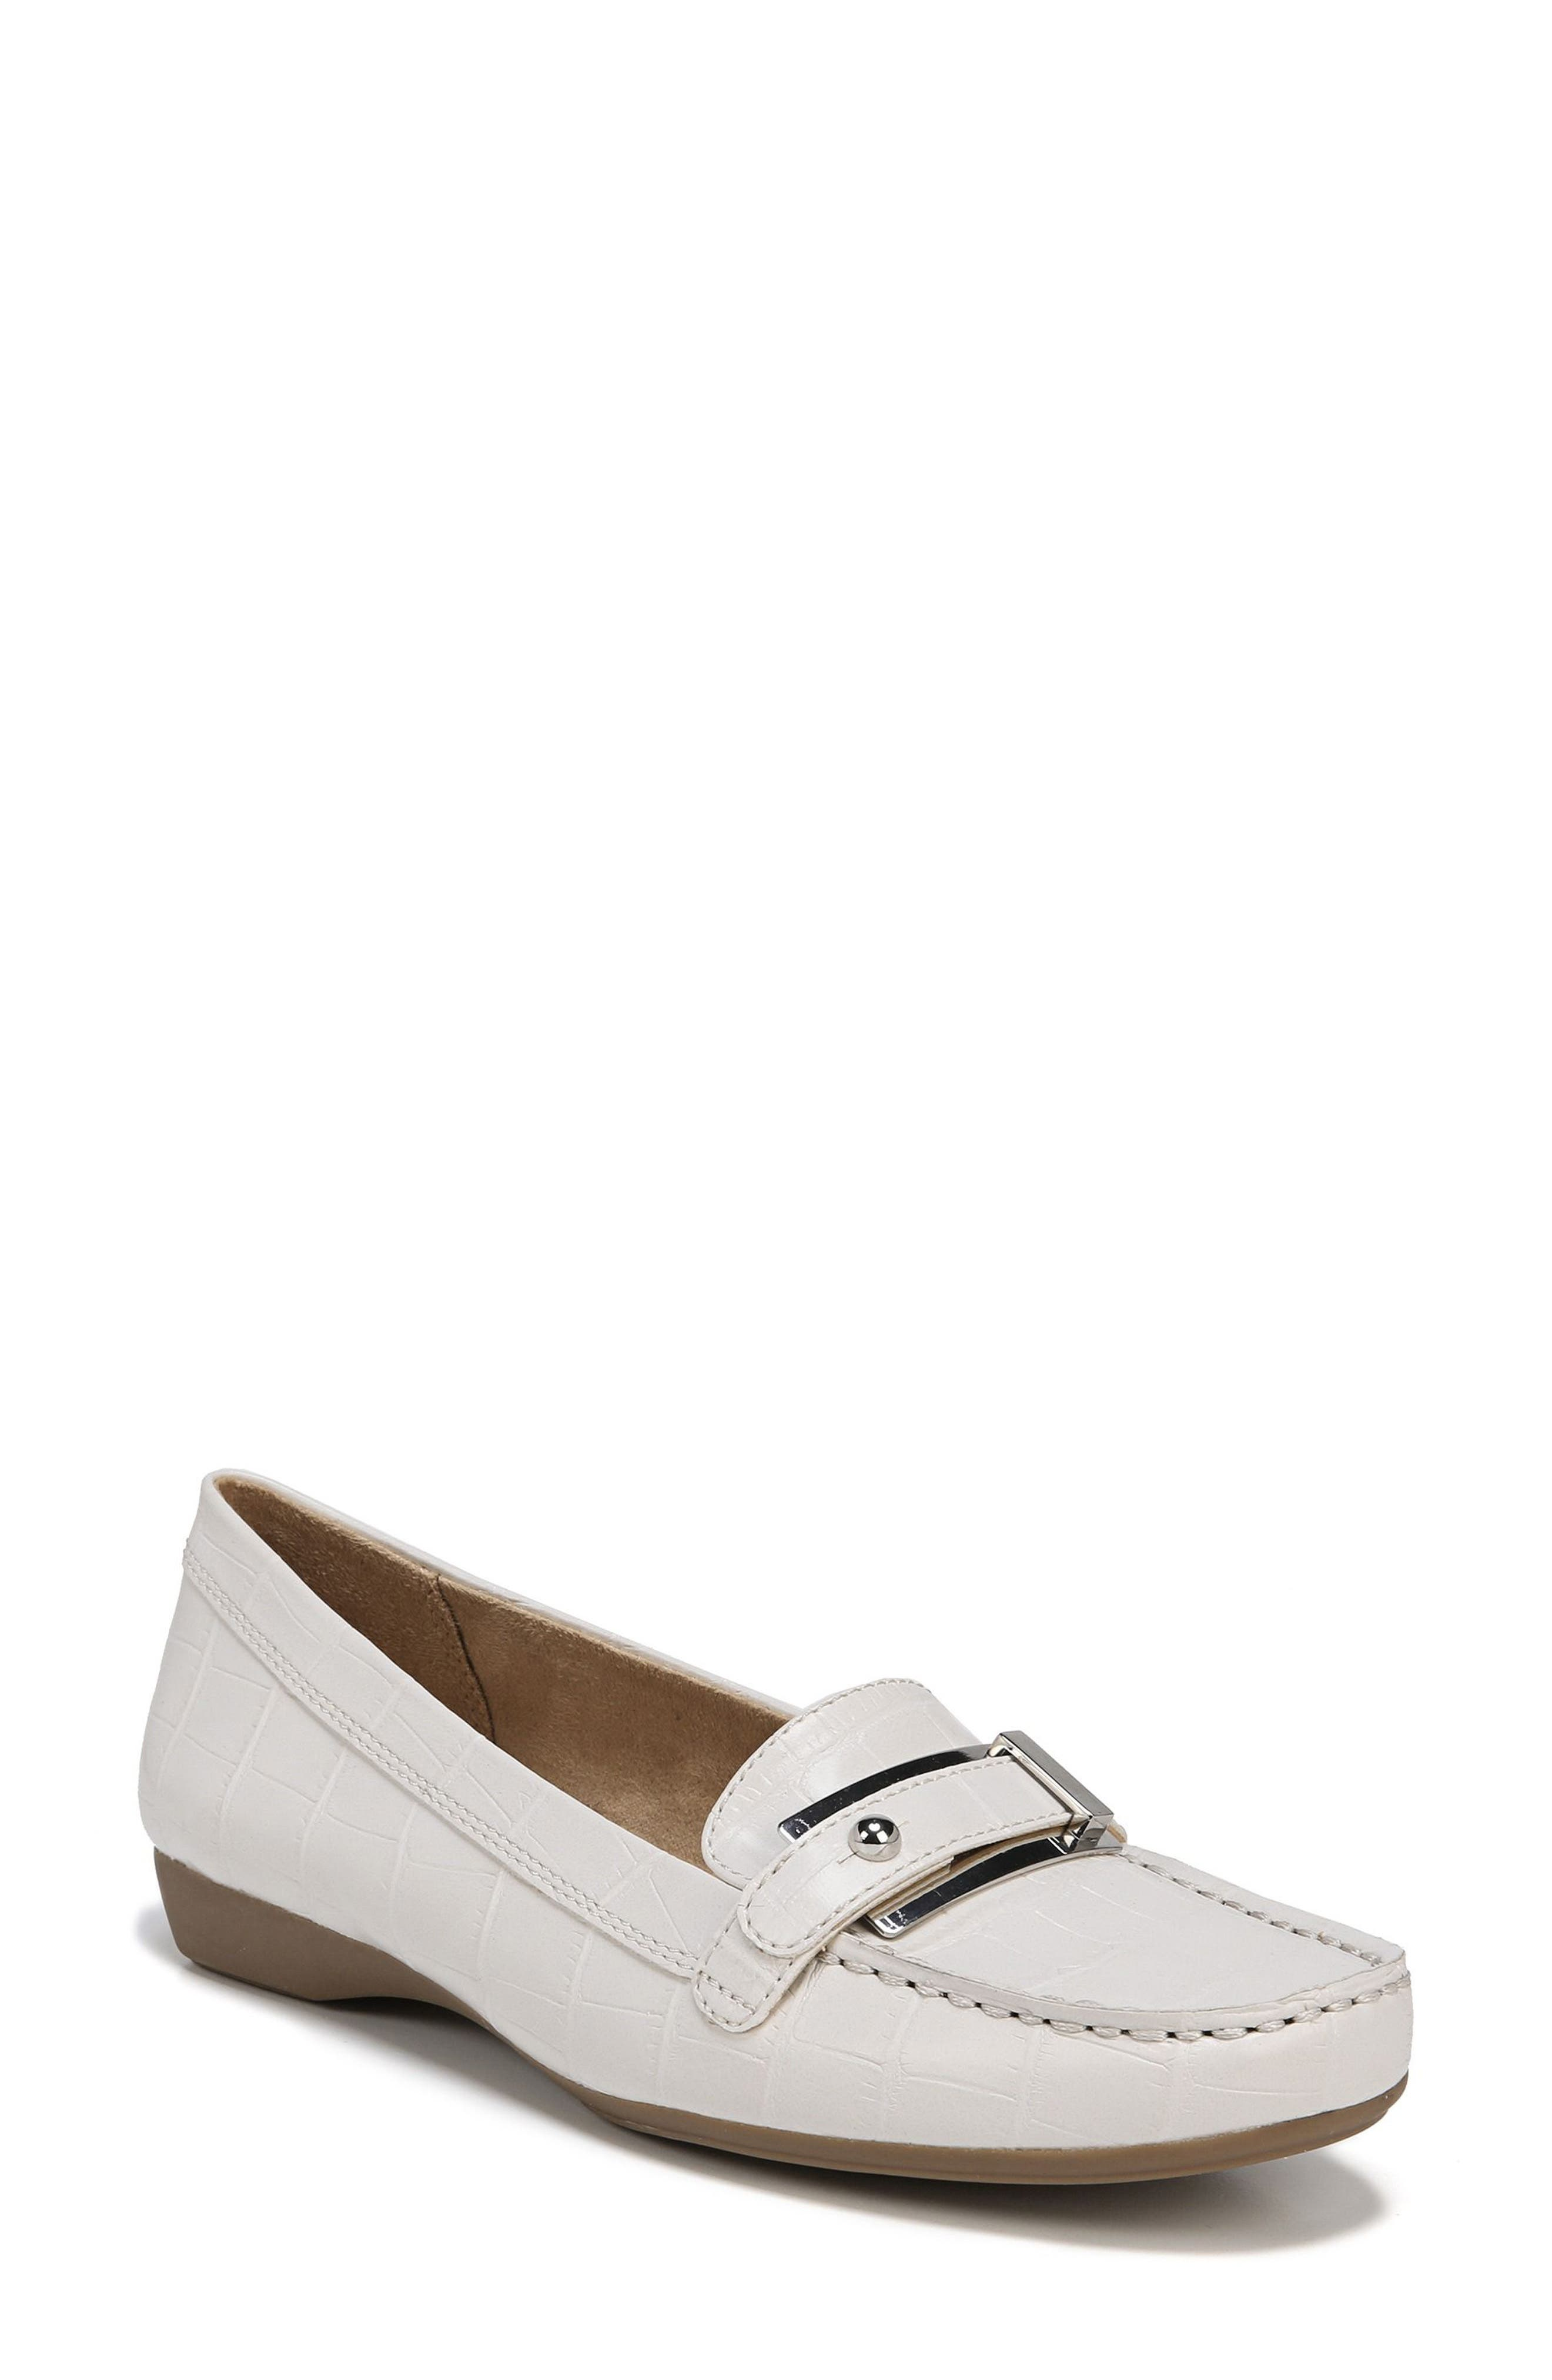 'Gisella' Loafer,                         Main,                         color, 101